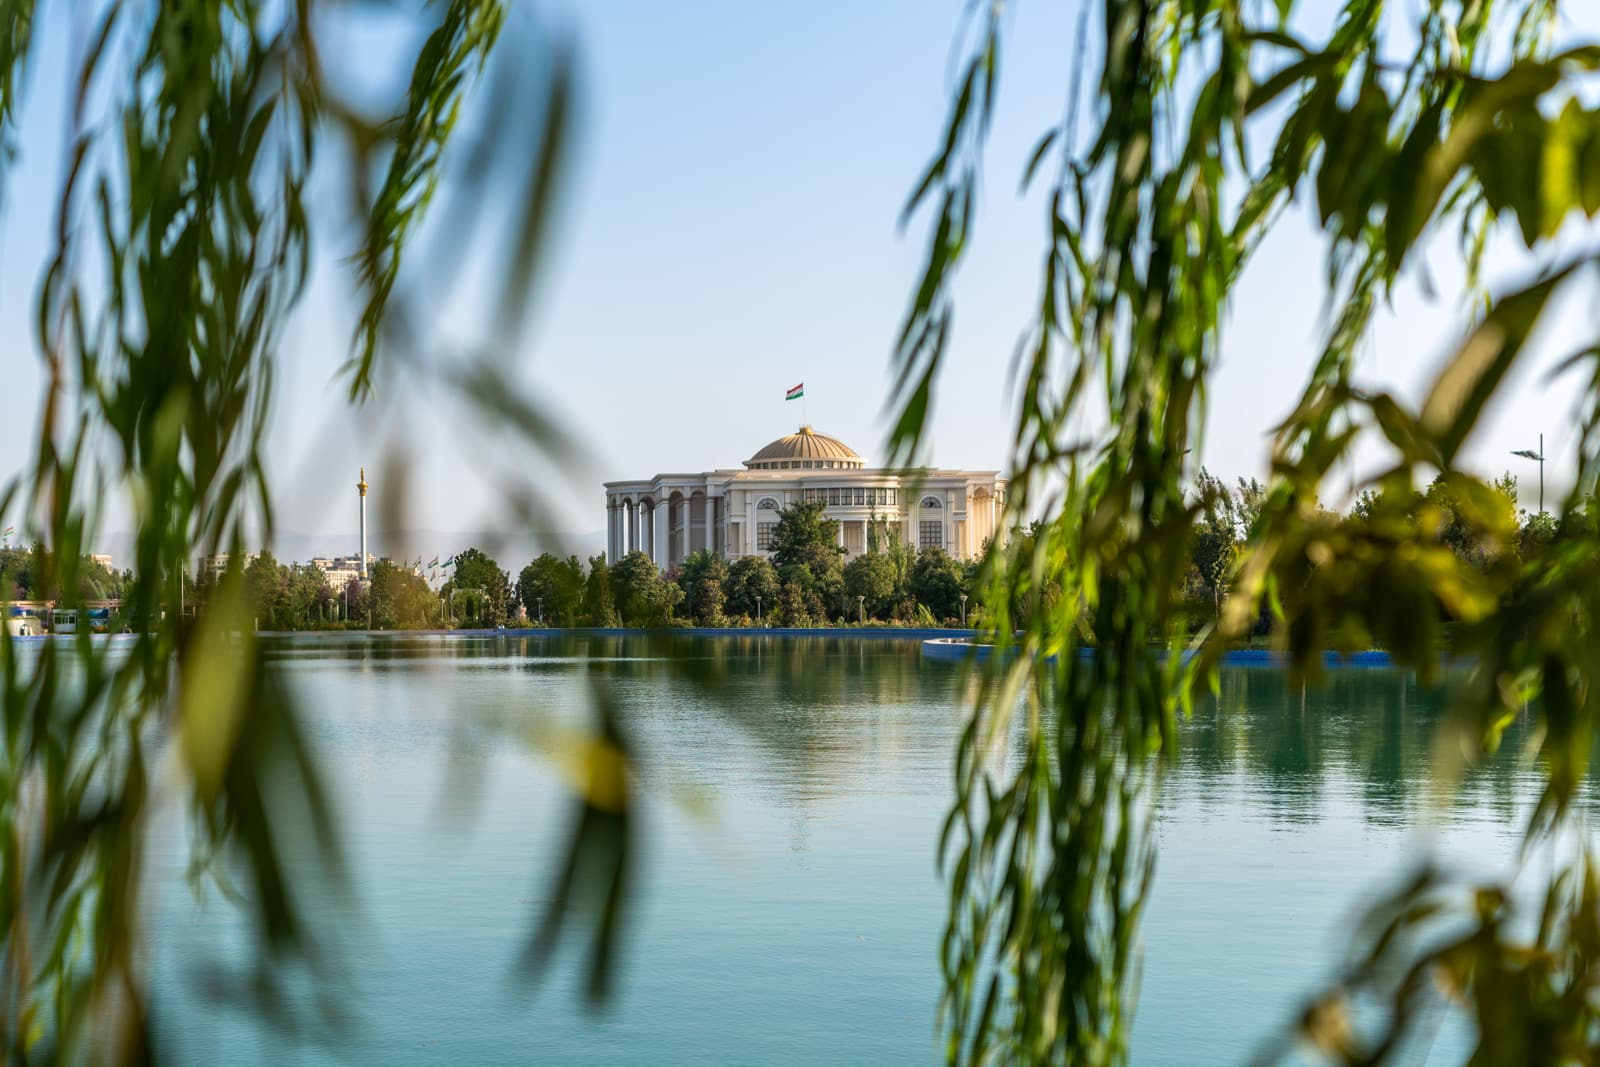 View of the Palace of Nations from Rudaki Park in Dushanbe, Tajikistan